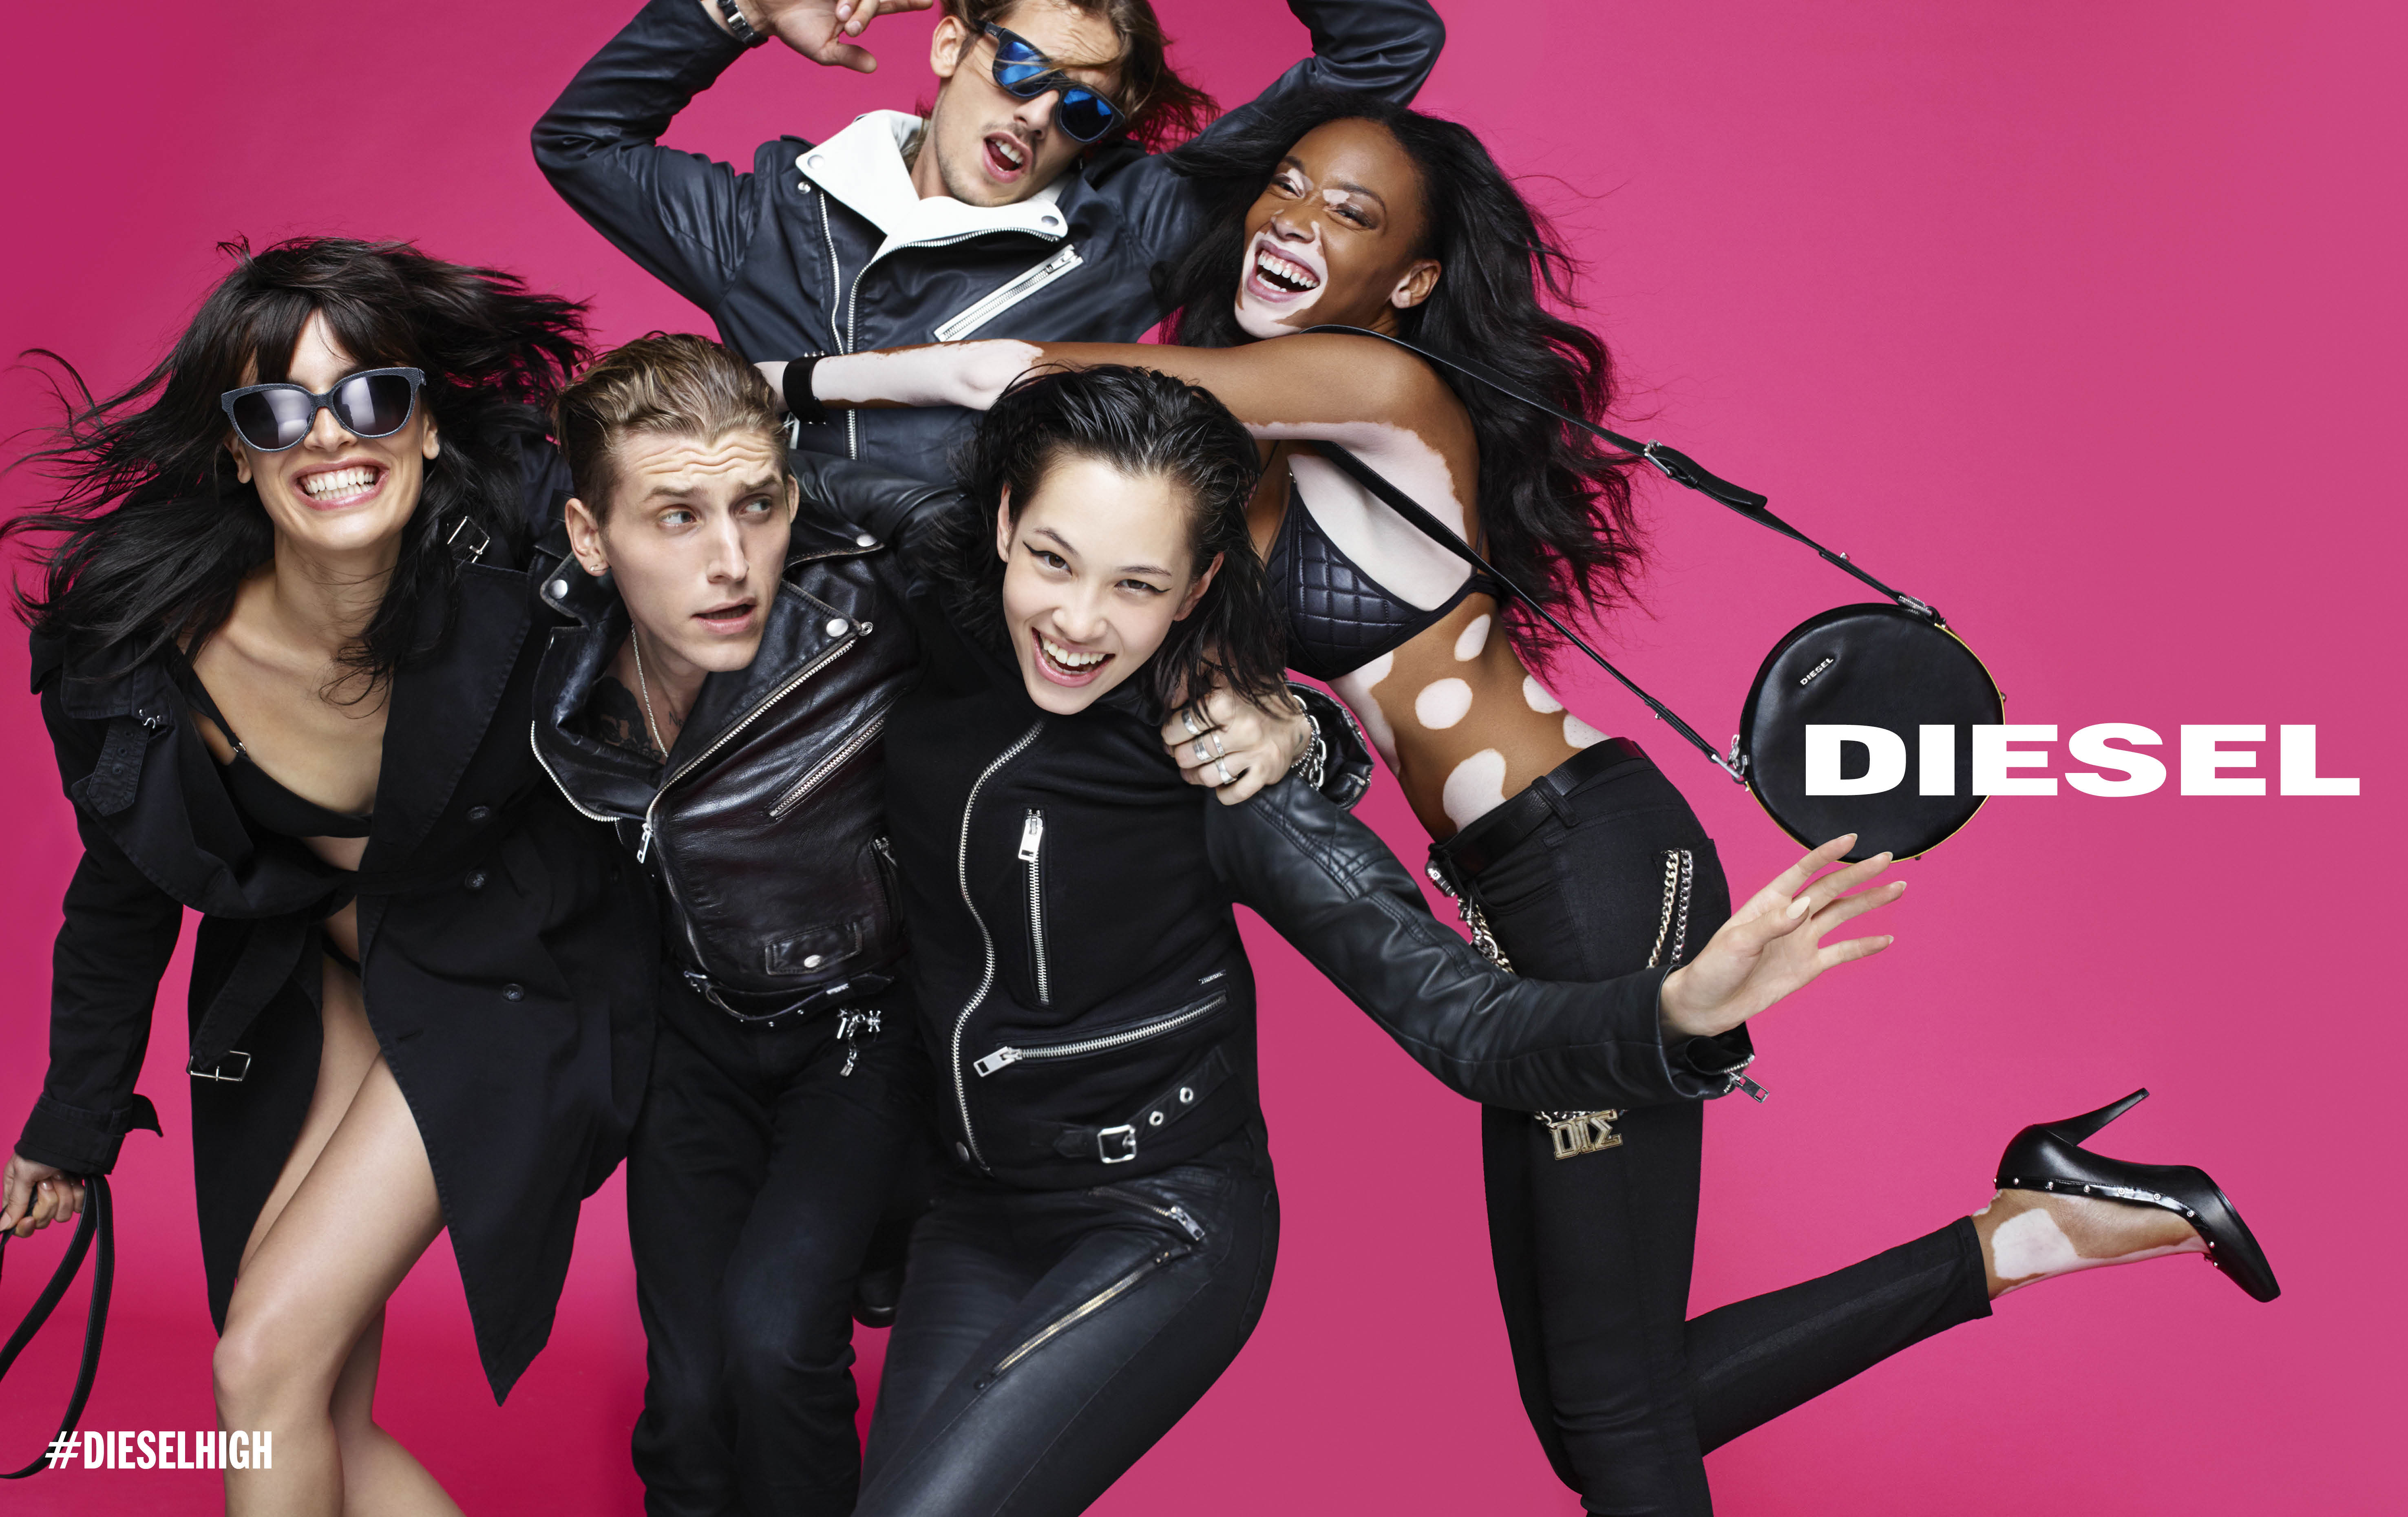 DIESEL_SS15_AD-DPS_02-LEATHER